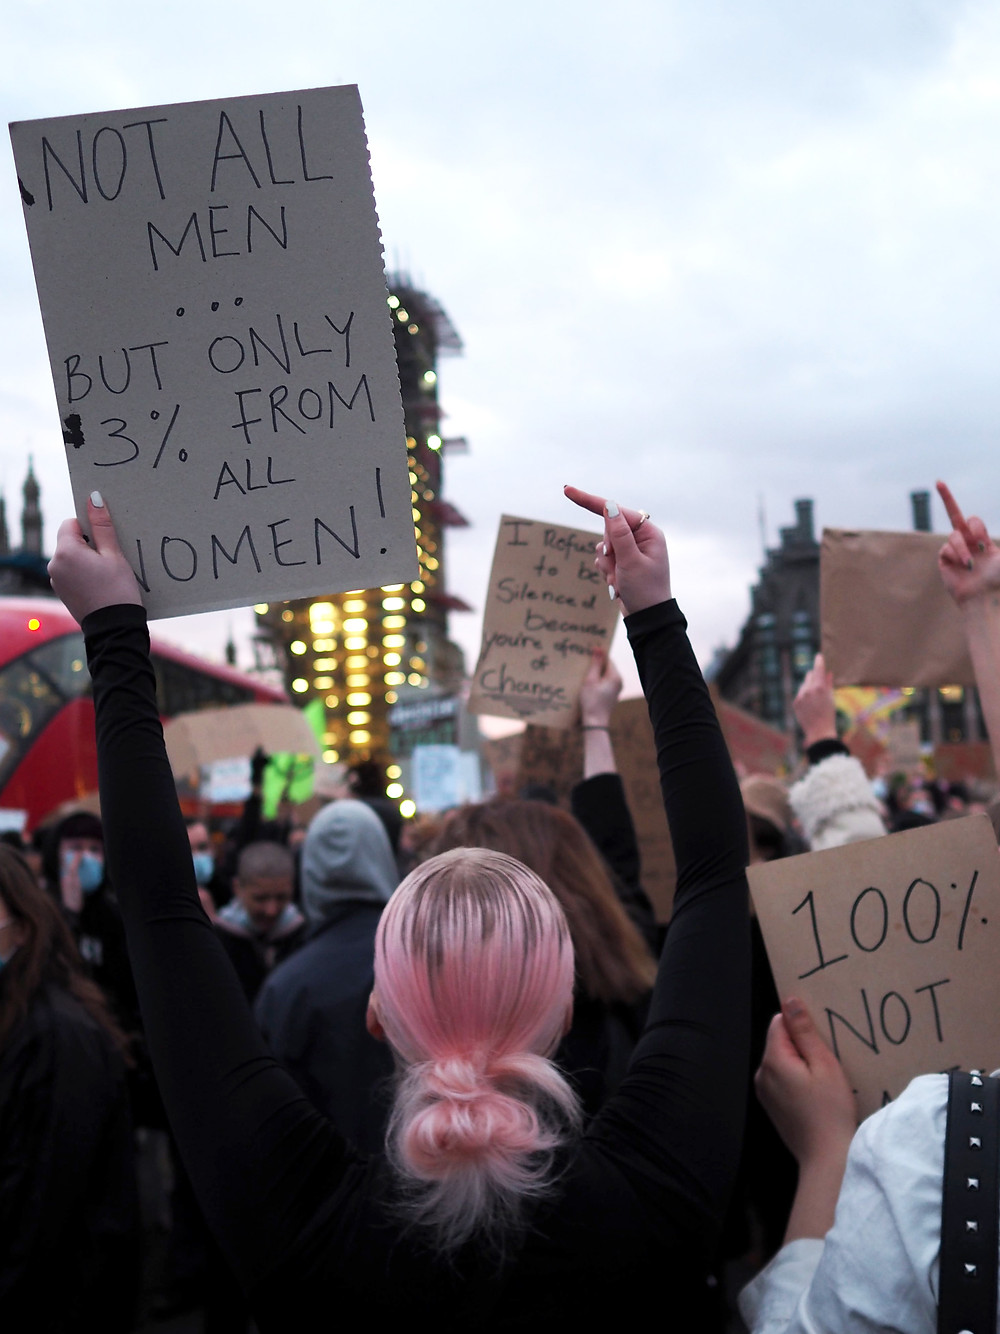 A woman holds up a sign at the protest against the Governments Police, Crime, Sentencing and Courts bill in Parliament Square on the 15th March 2021. Picture by: Filippo Ceccanibbi.